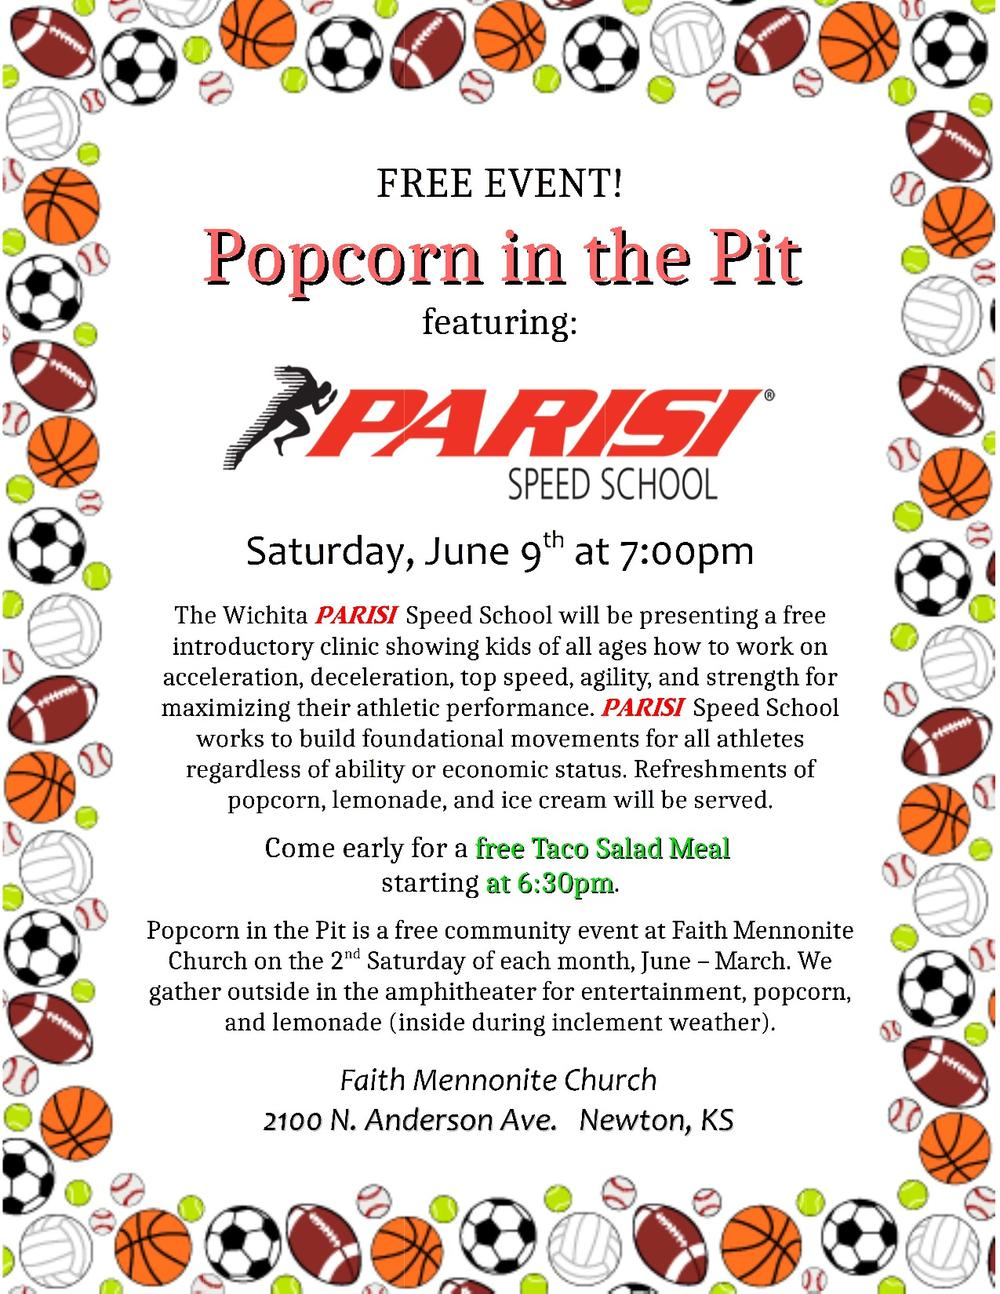 Popcorn in the Pit flyer